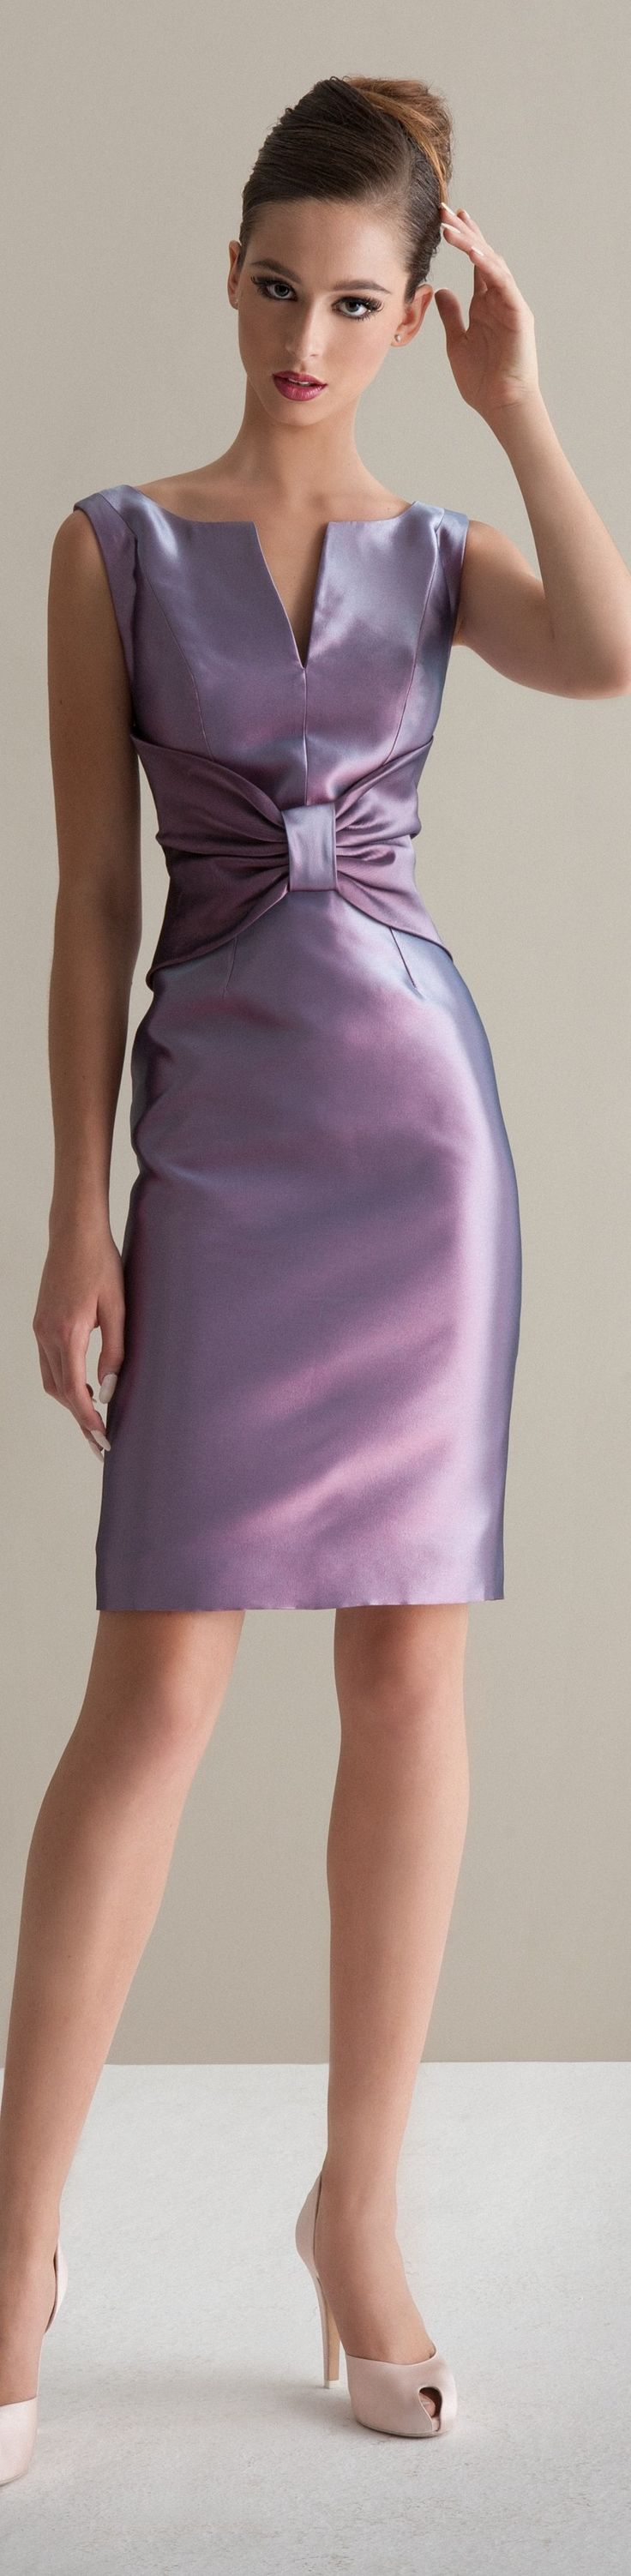 Awesome dress by Antonio Riva -perfect for bridesmaids